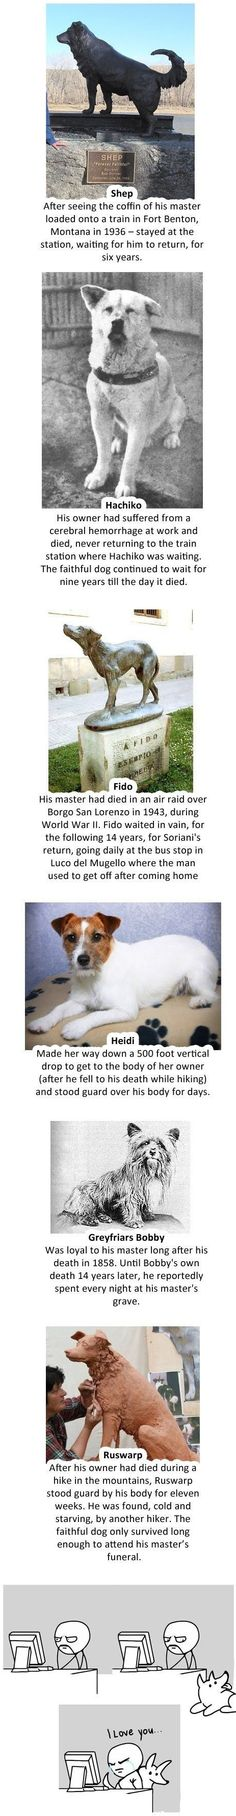 Why dogs are awesome (I shed a tear reading it!)